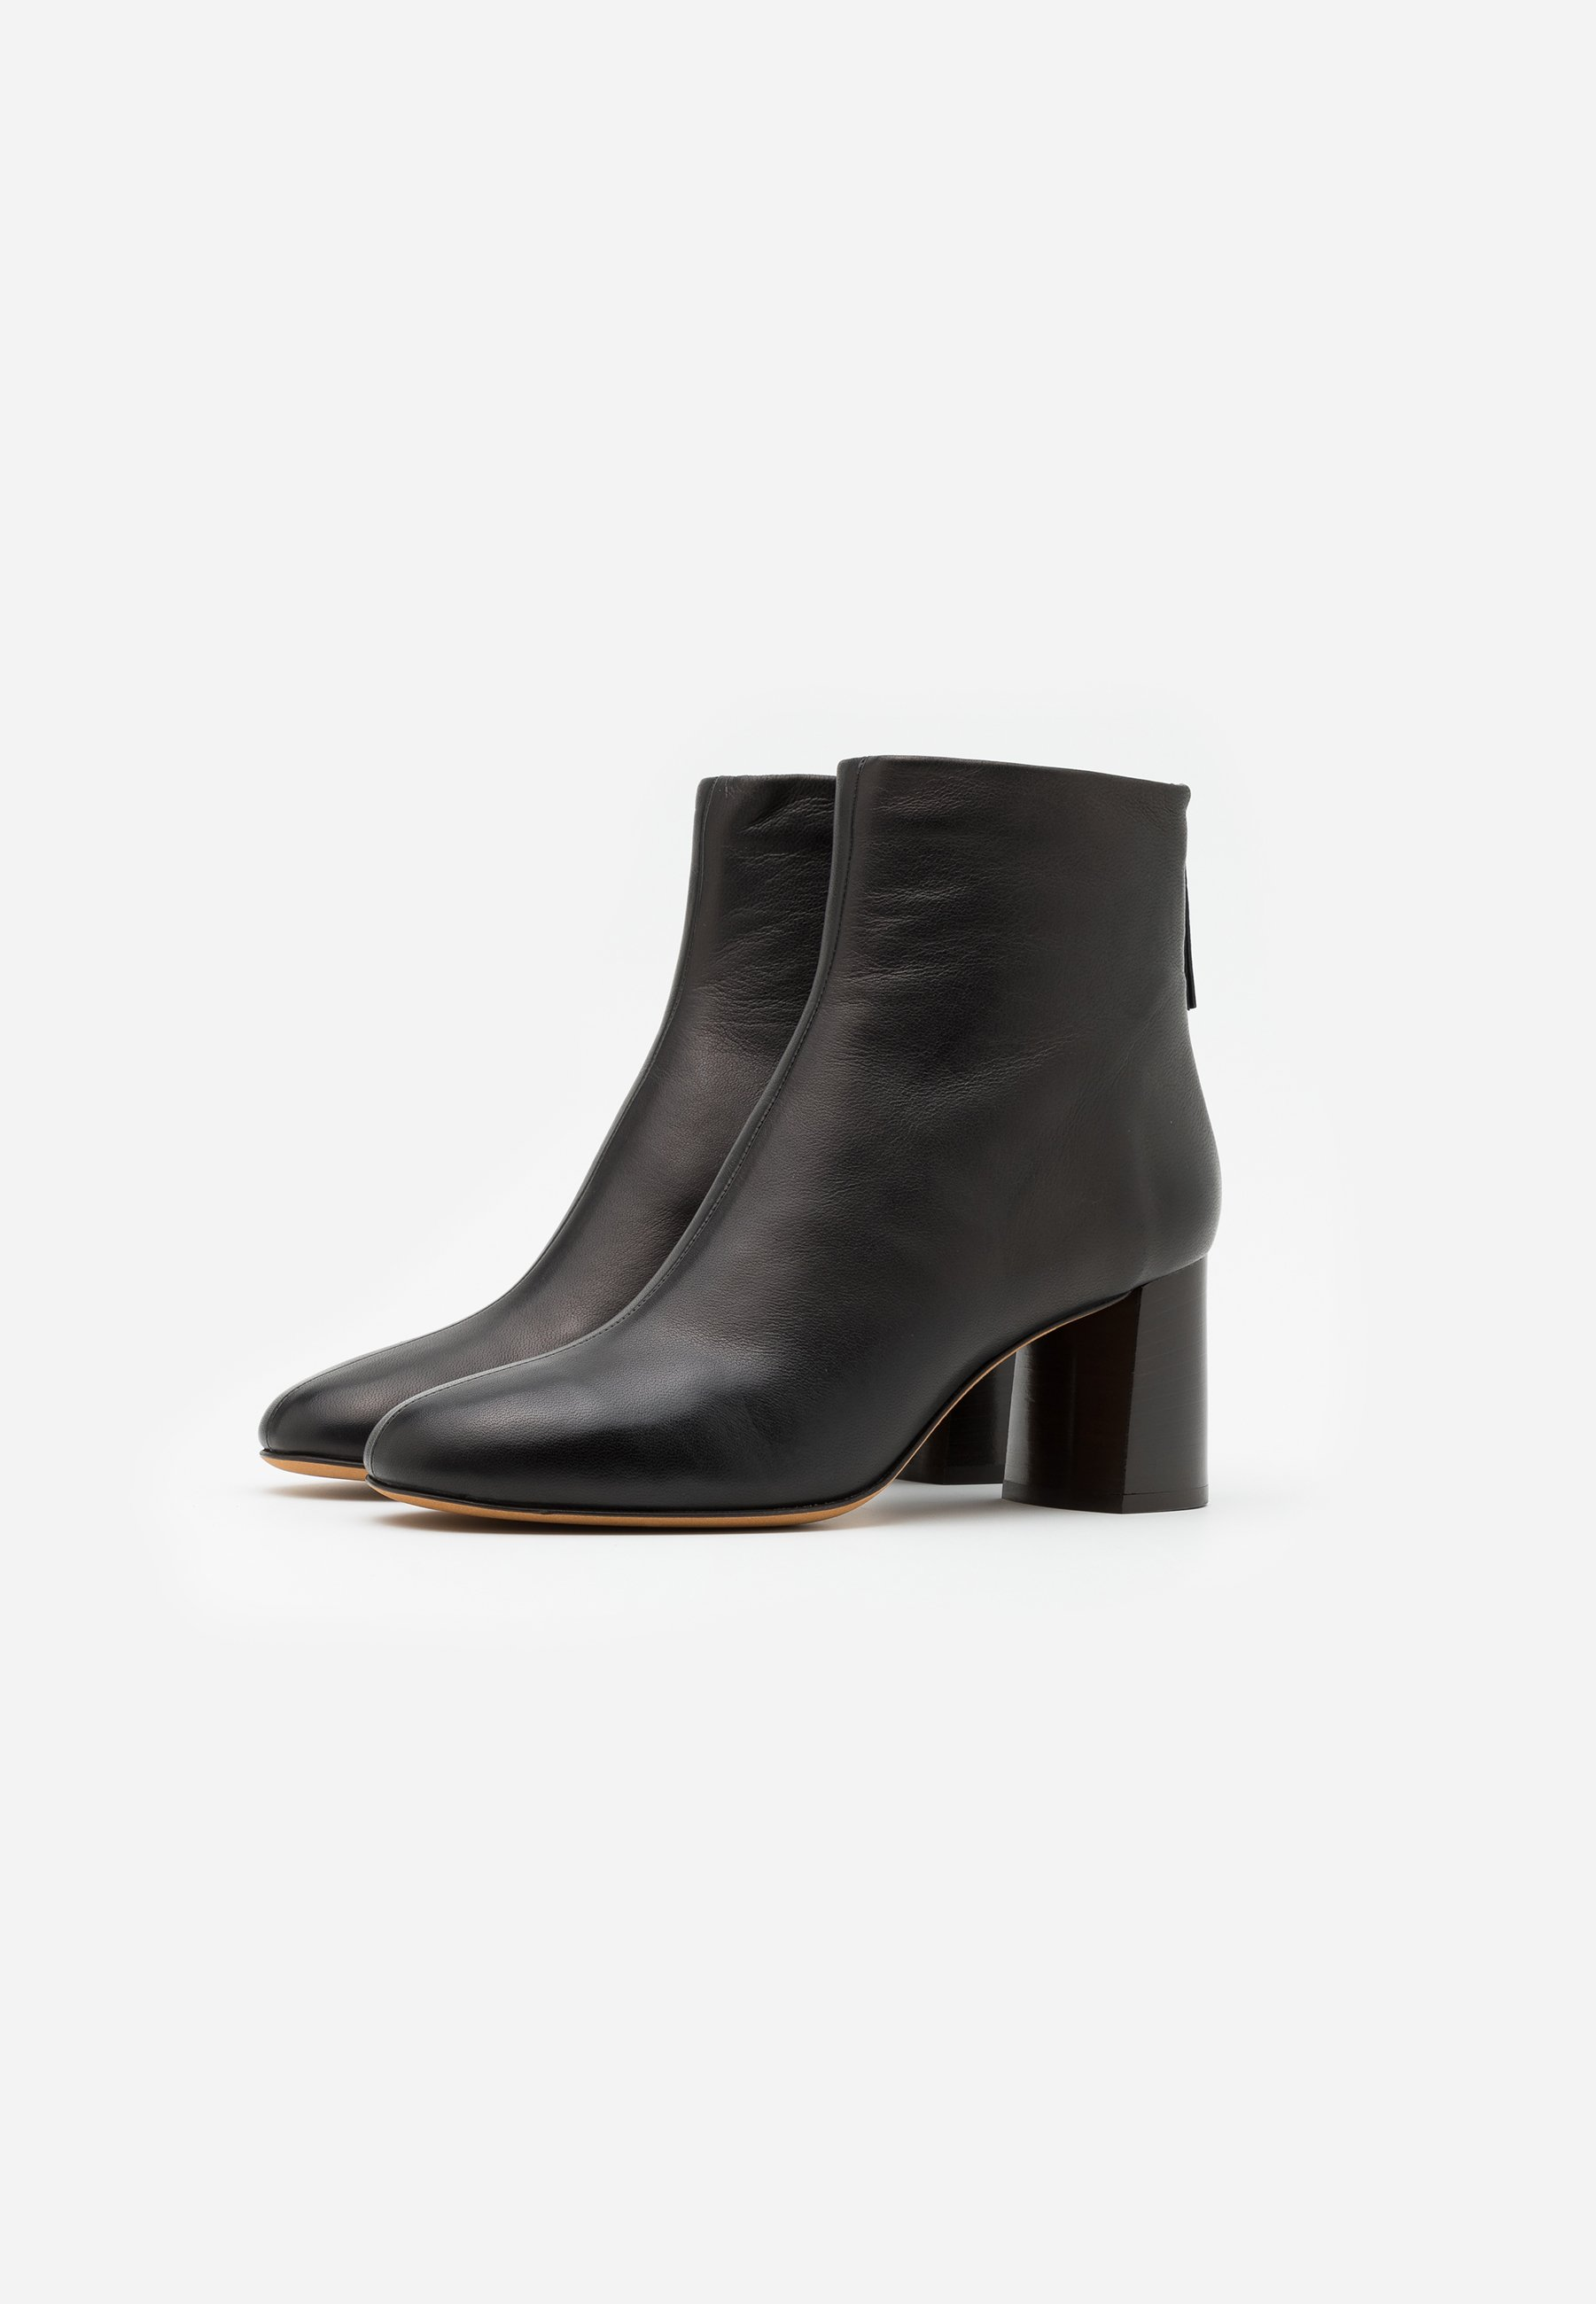 Recommend Discount Cheapest 3.1 Phillip Lim NADIA SOFT HEEL BOOT - Classic ankle boots - black | women's shoes 2020 tgv0q